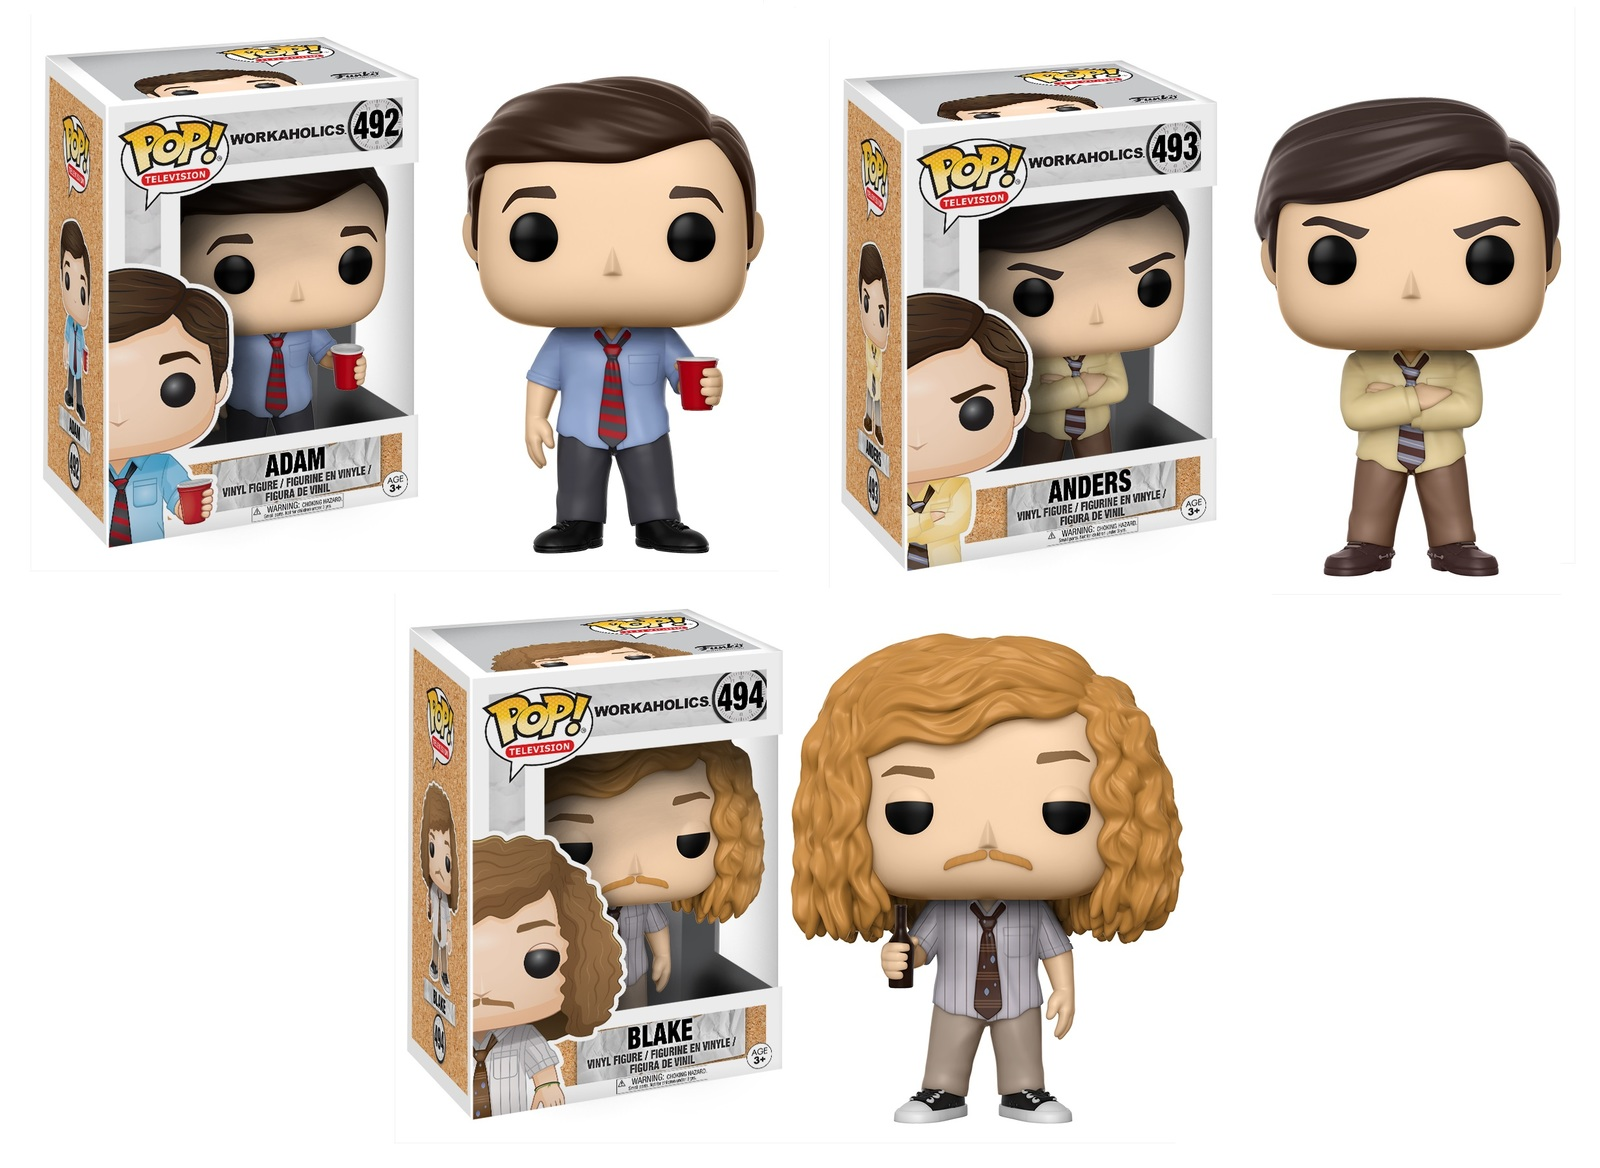 Workaholics – Pop! Vinyl Bundle image